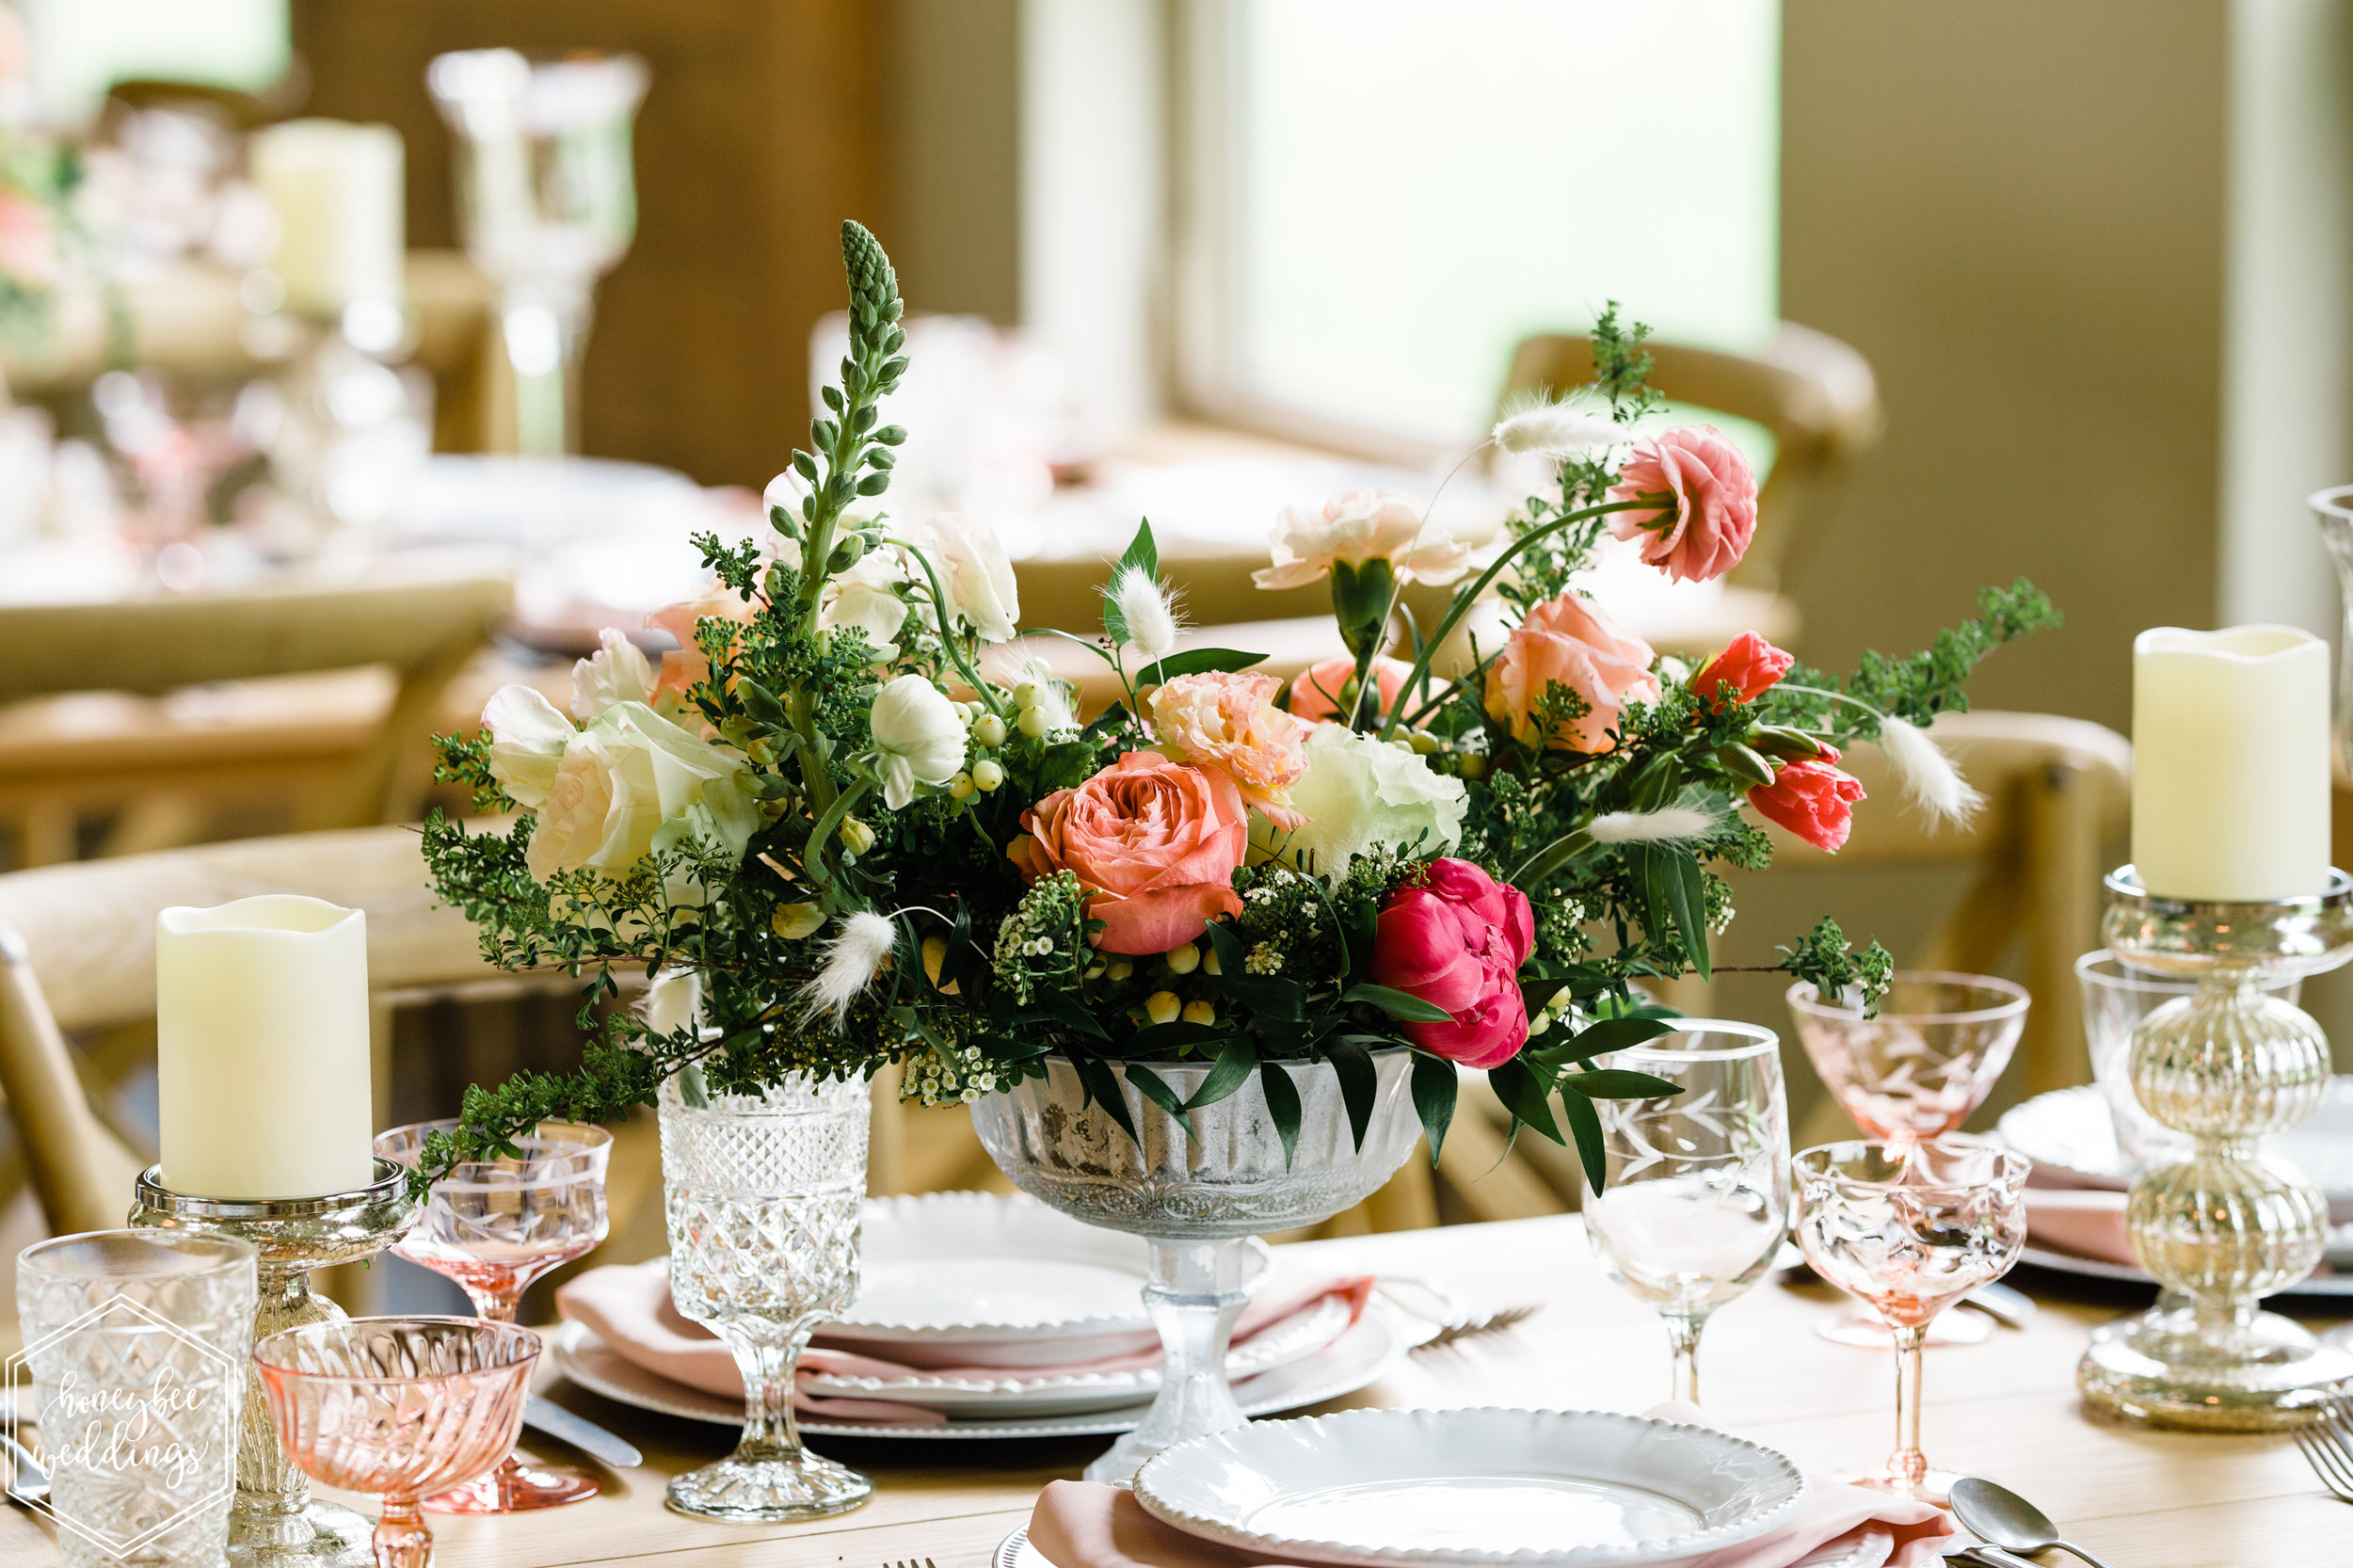 009Coral Mountain Wedding at White Raven_Honeybee Weddings_May 23, 2019-19.jpg